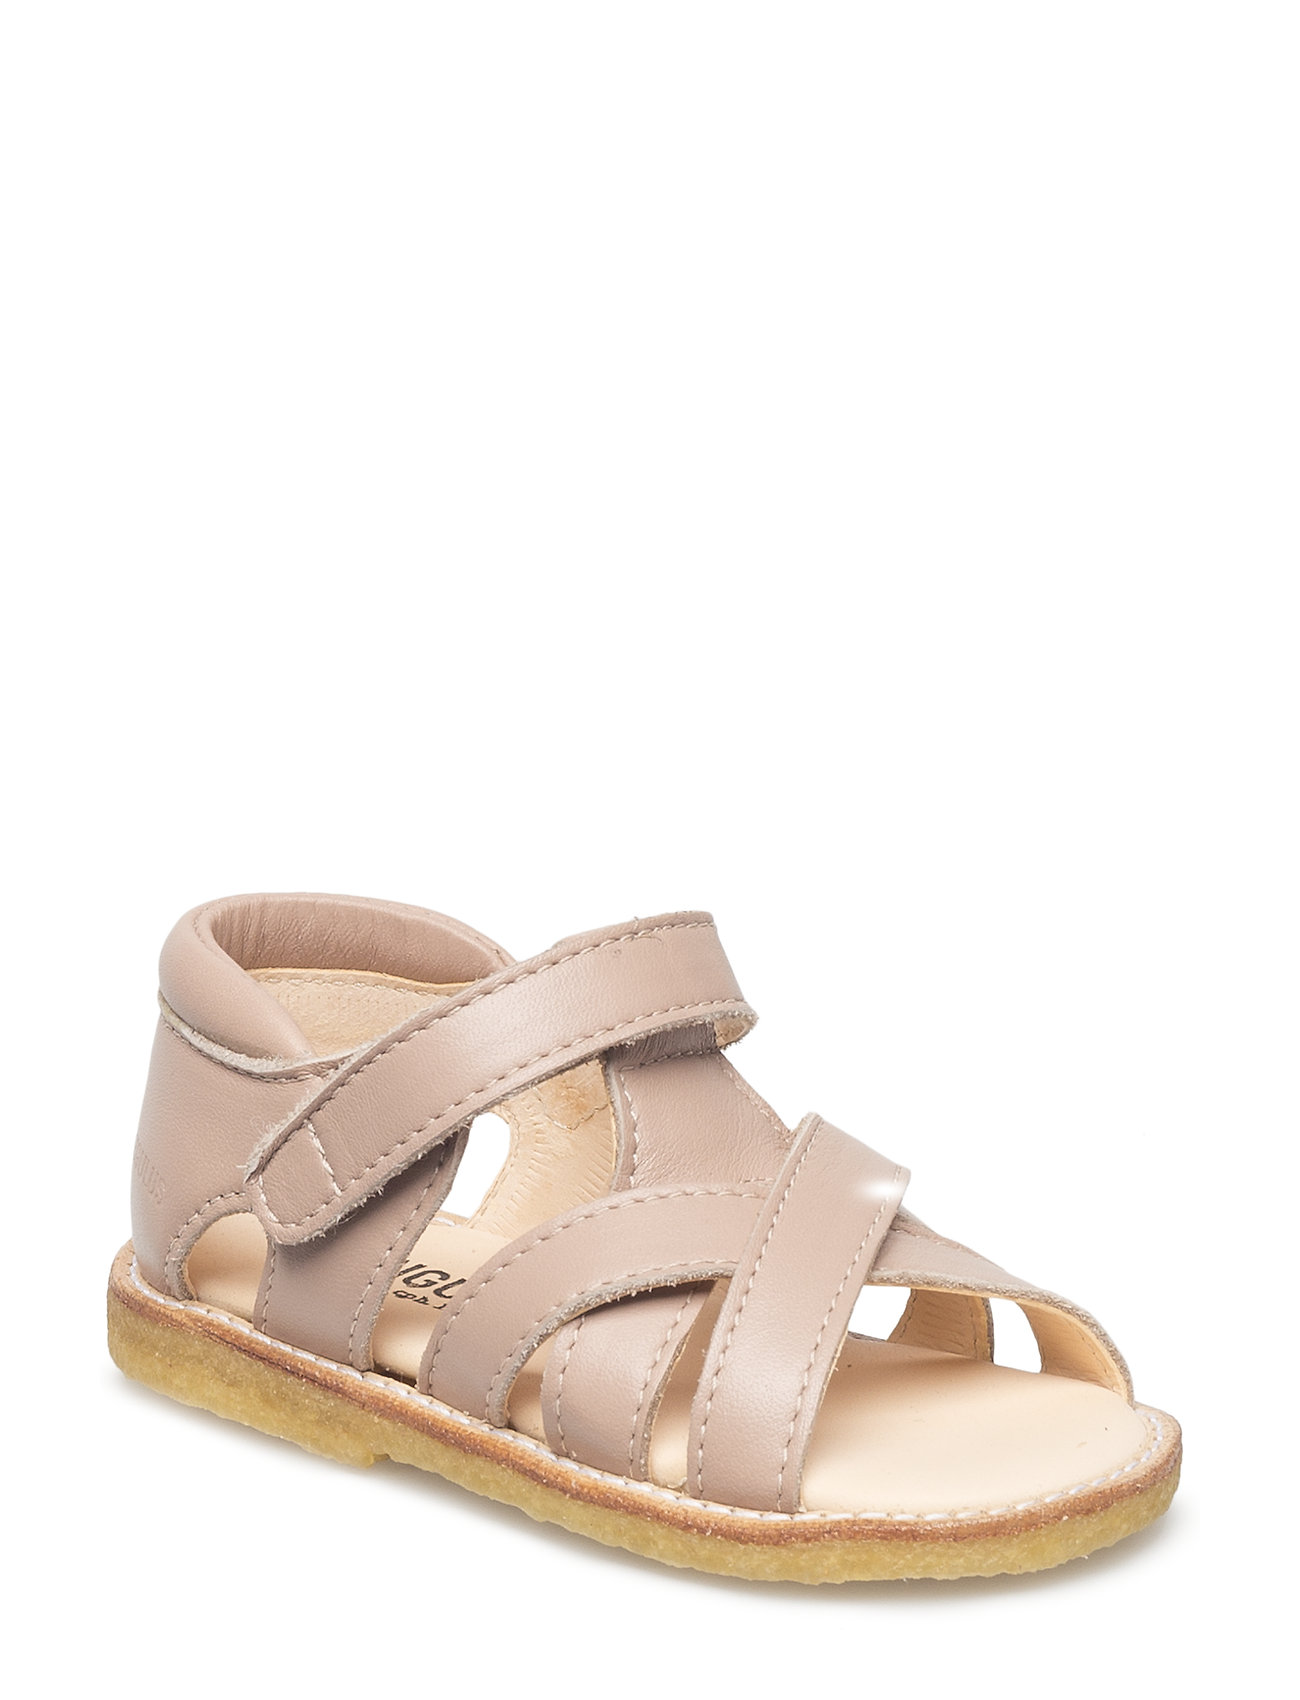 ANGULUS Sandals - flat - 1433 MAKE-UP